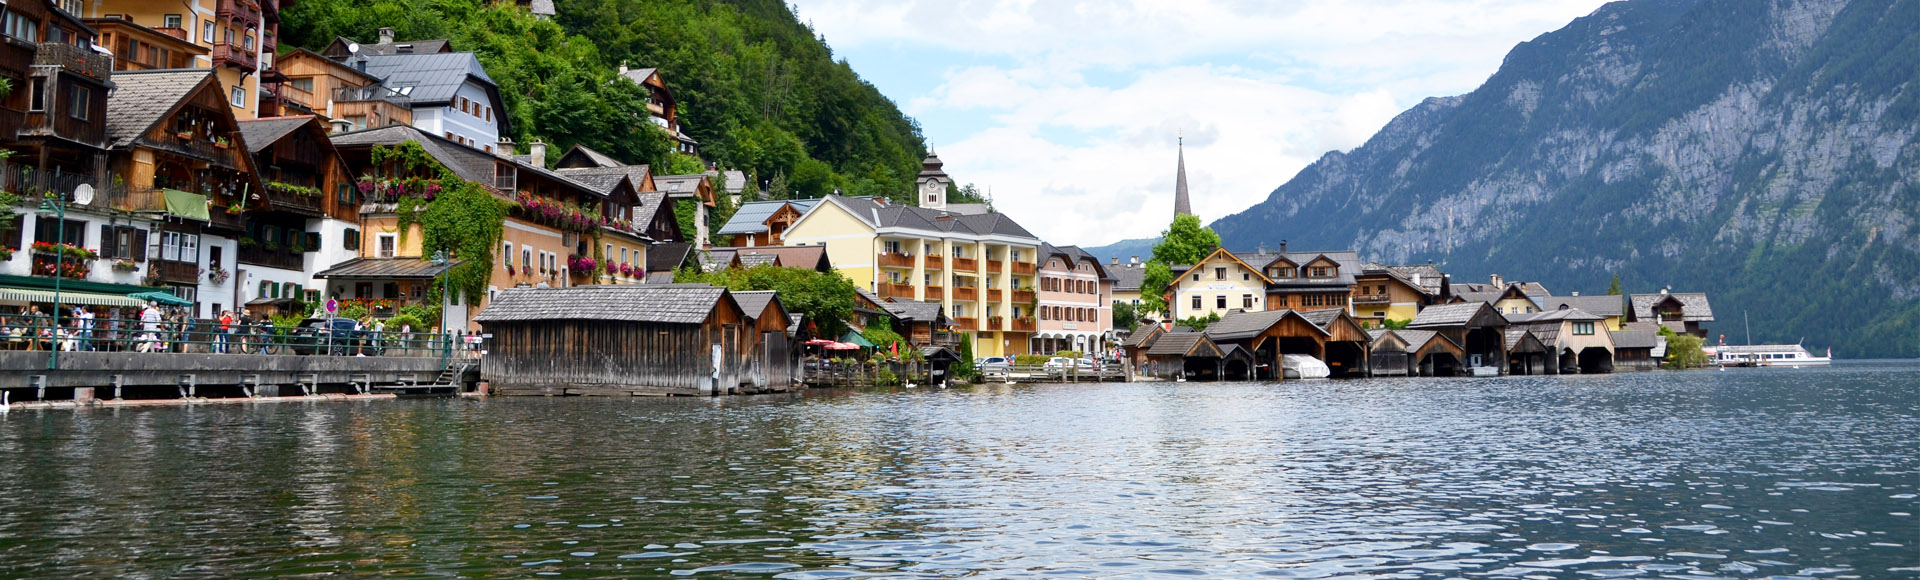 Planning the Perfect Day Trip to Hallstatt, Austria